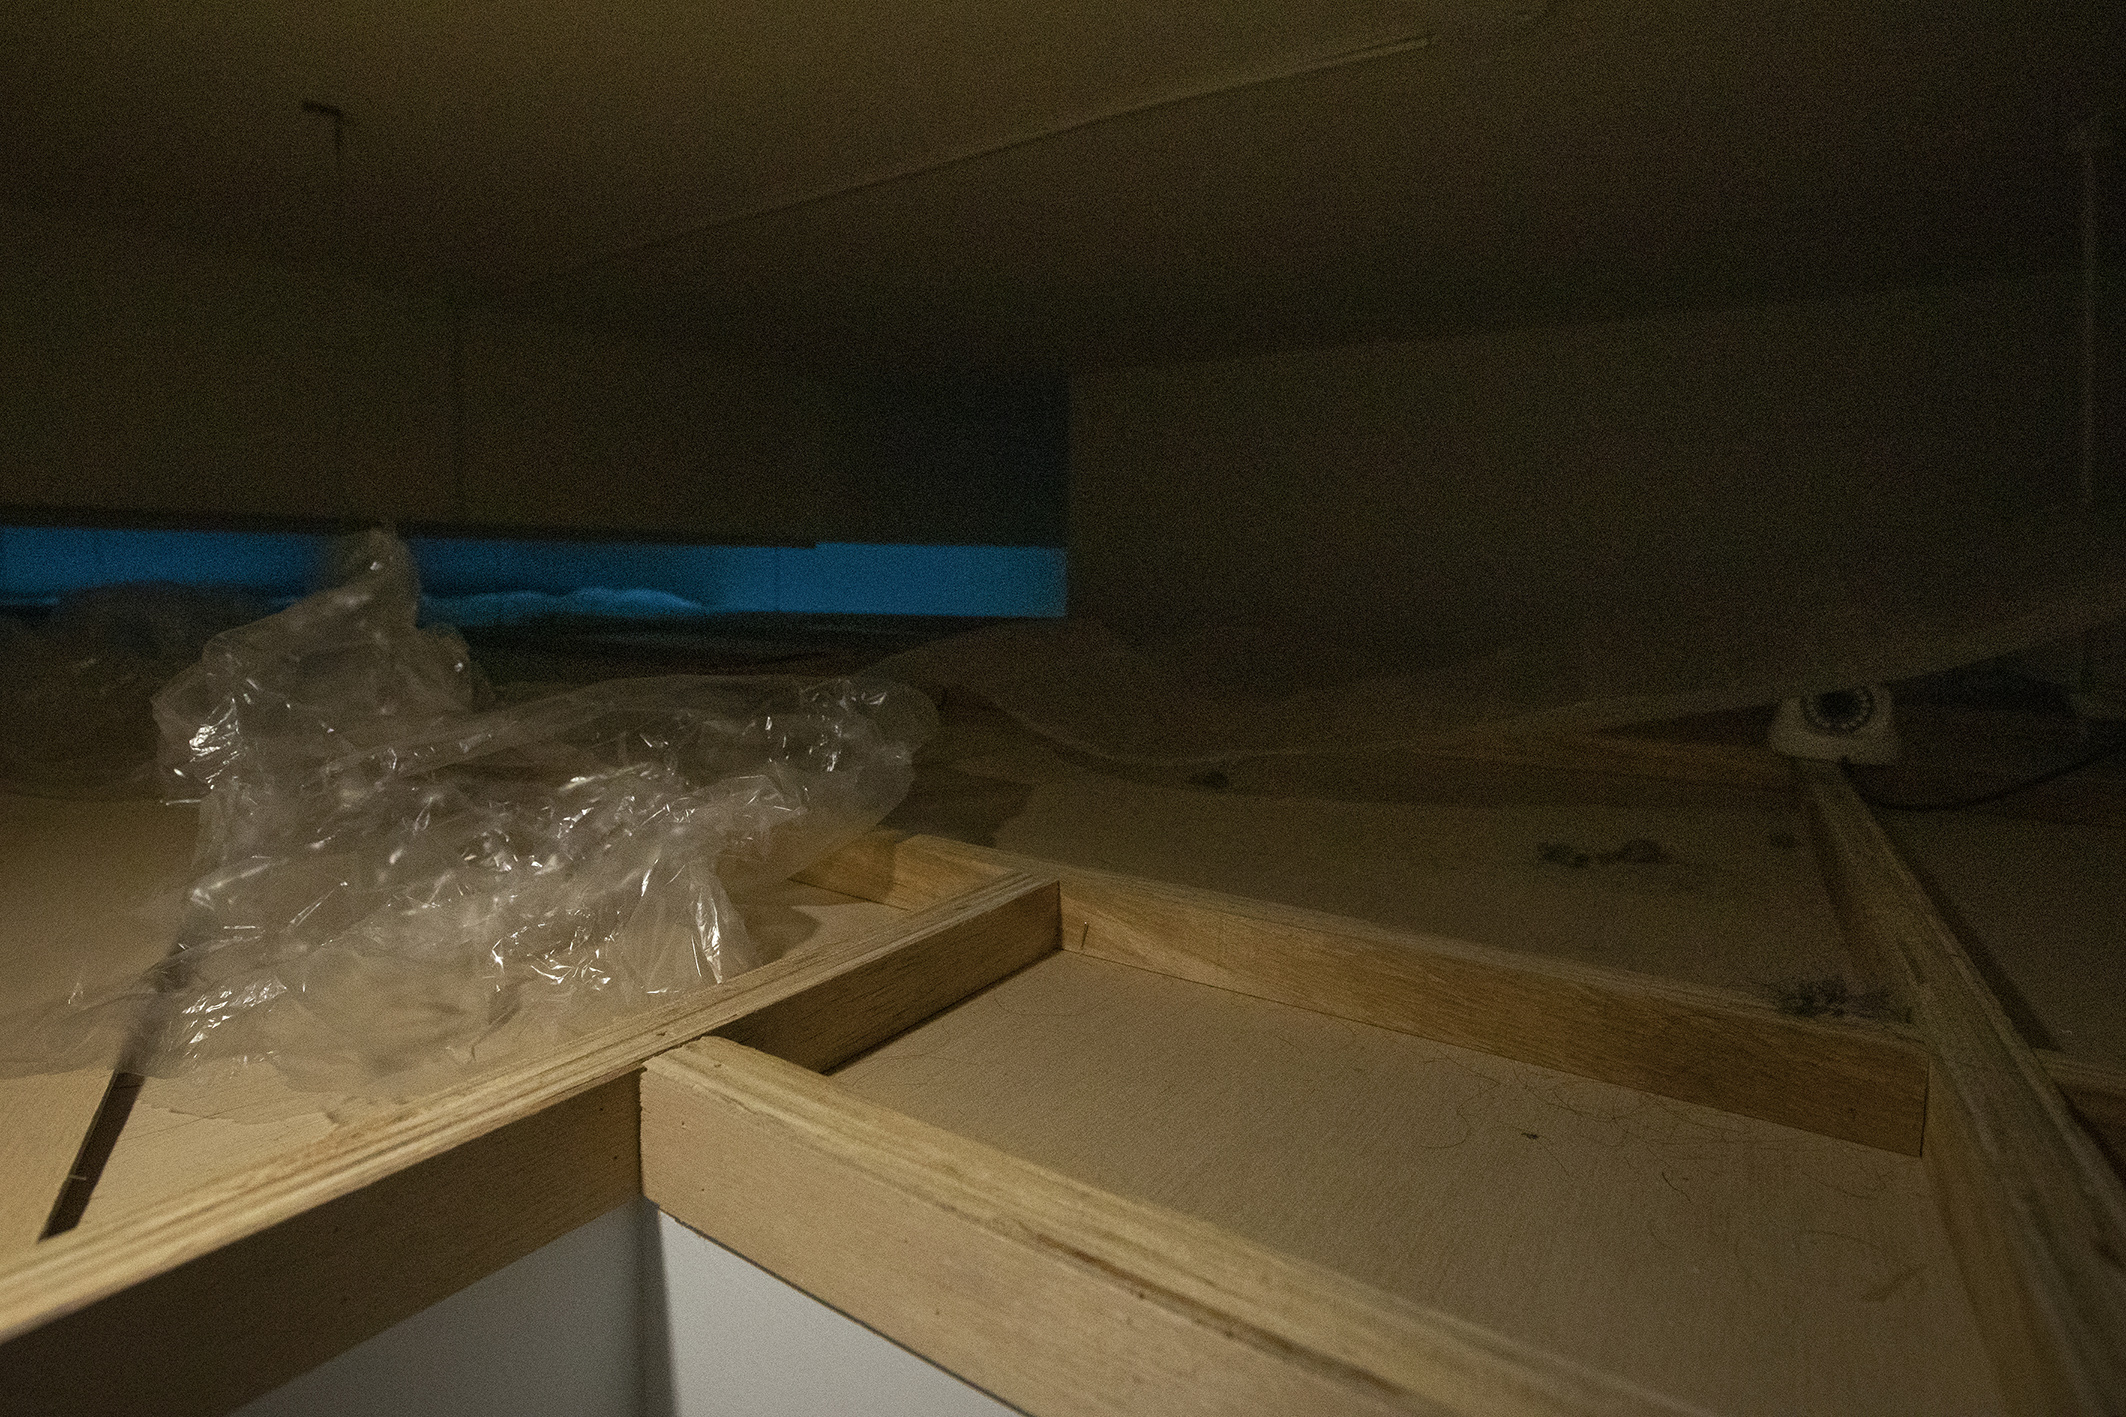 At Present, and Gallery's Mezzanine, Site specific (abandoned construction material, dust, CCTV), Dimensions variable, 2021